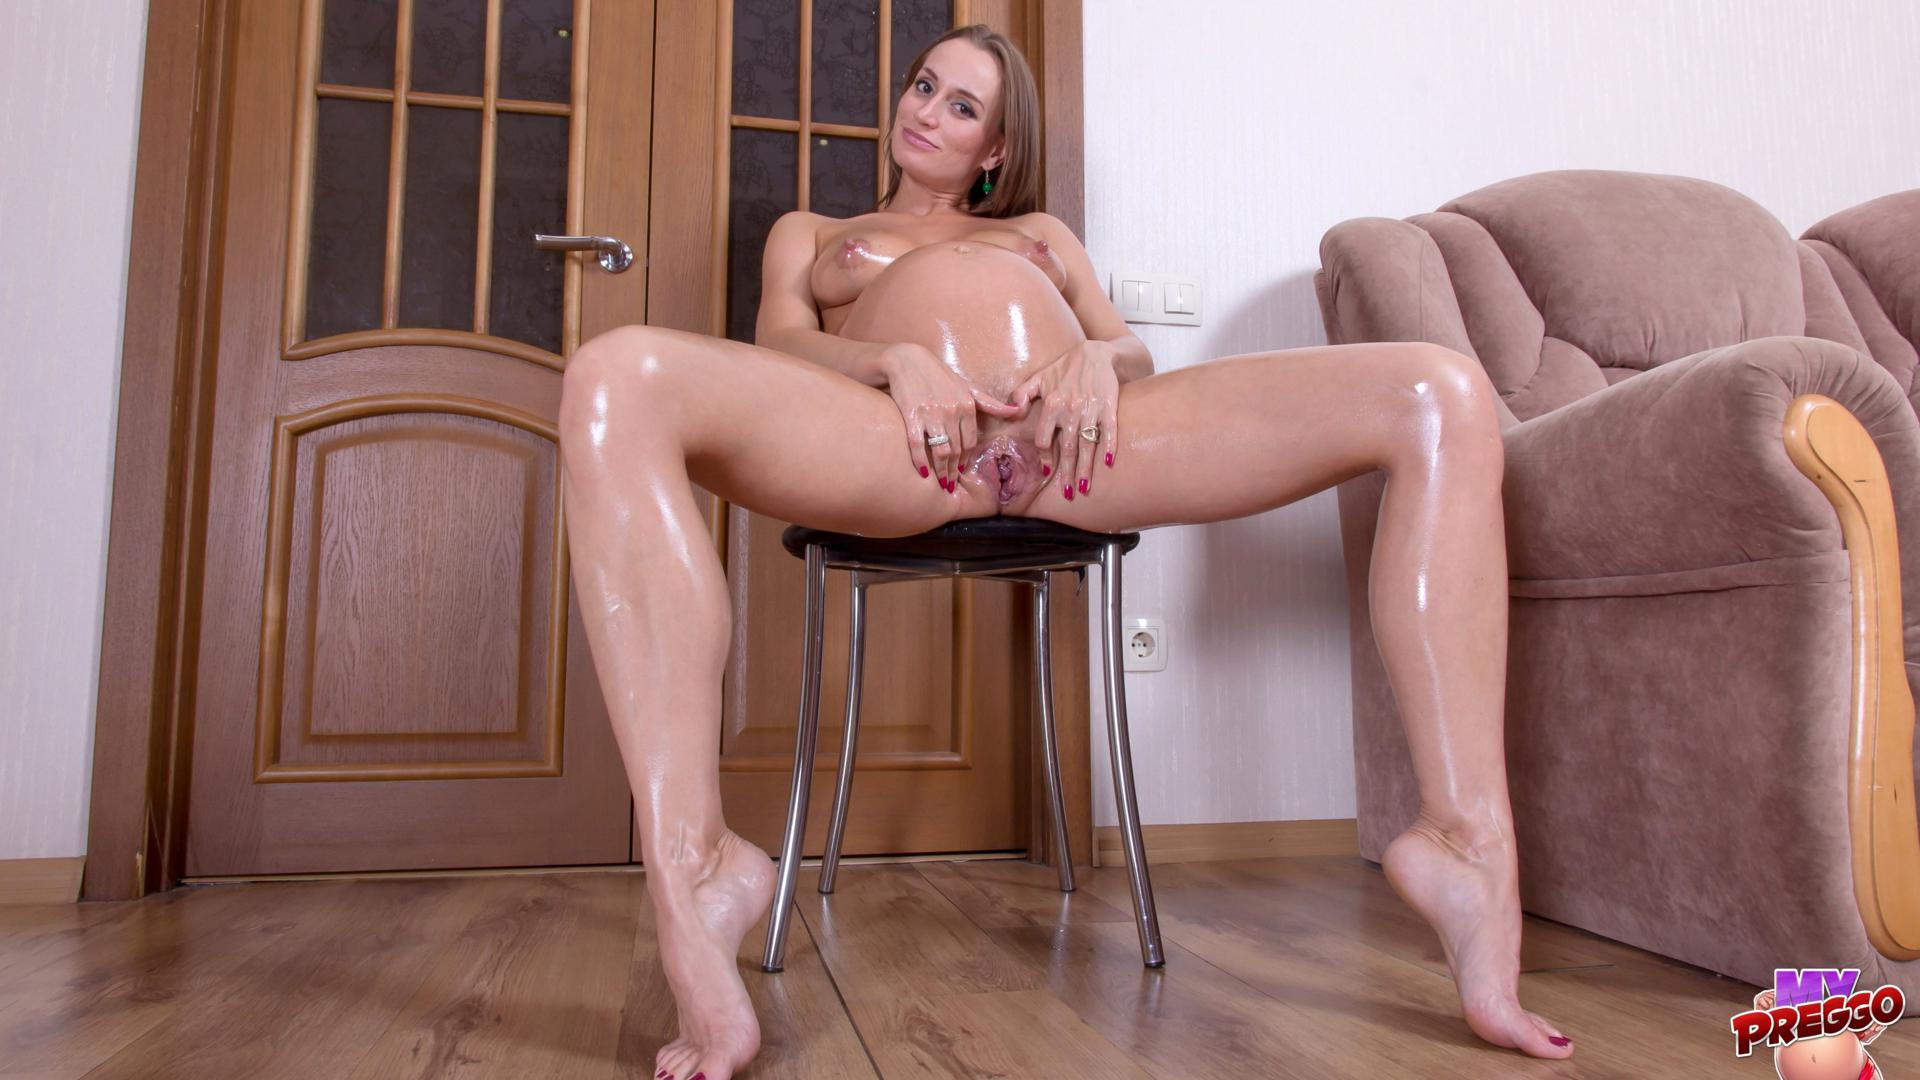 Naked oiled pregnant pictures